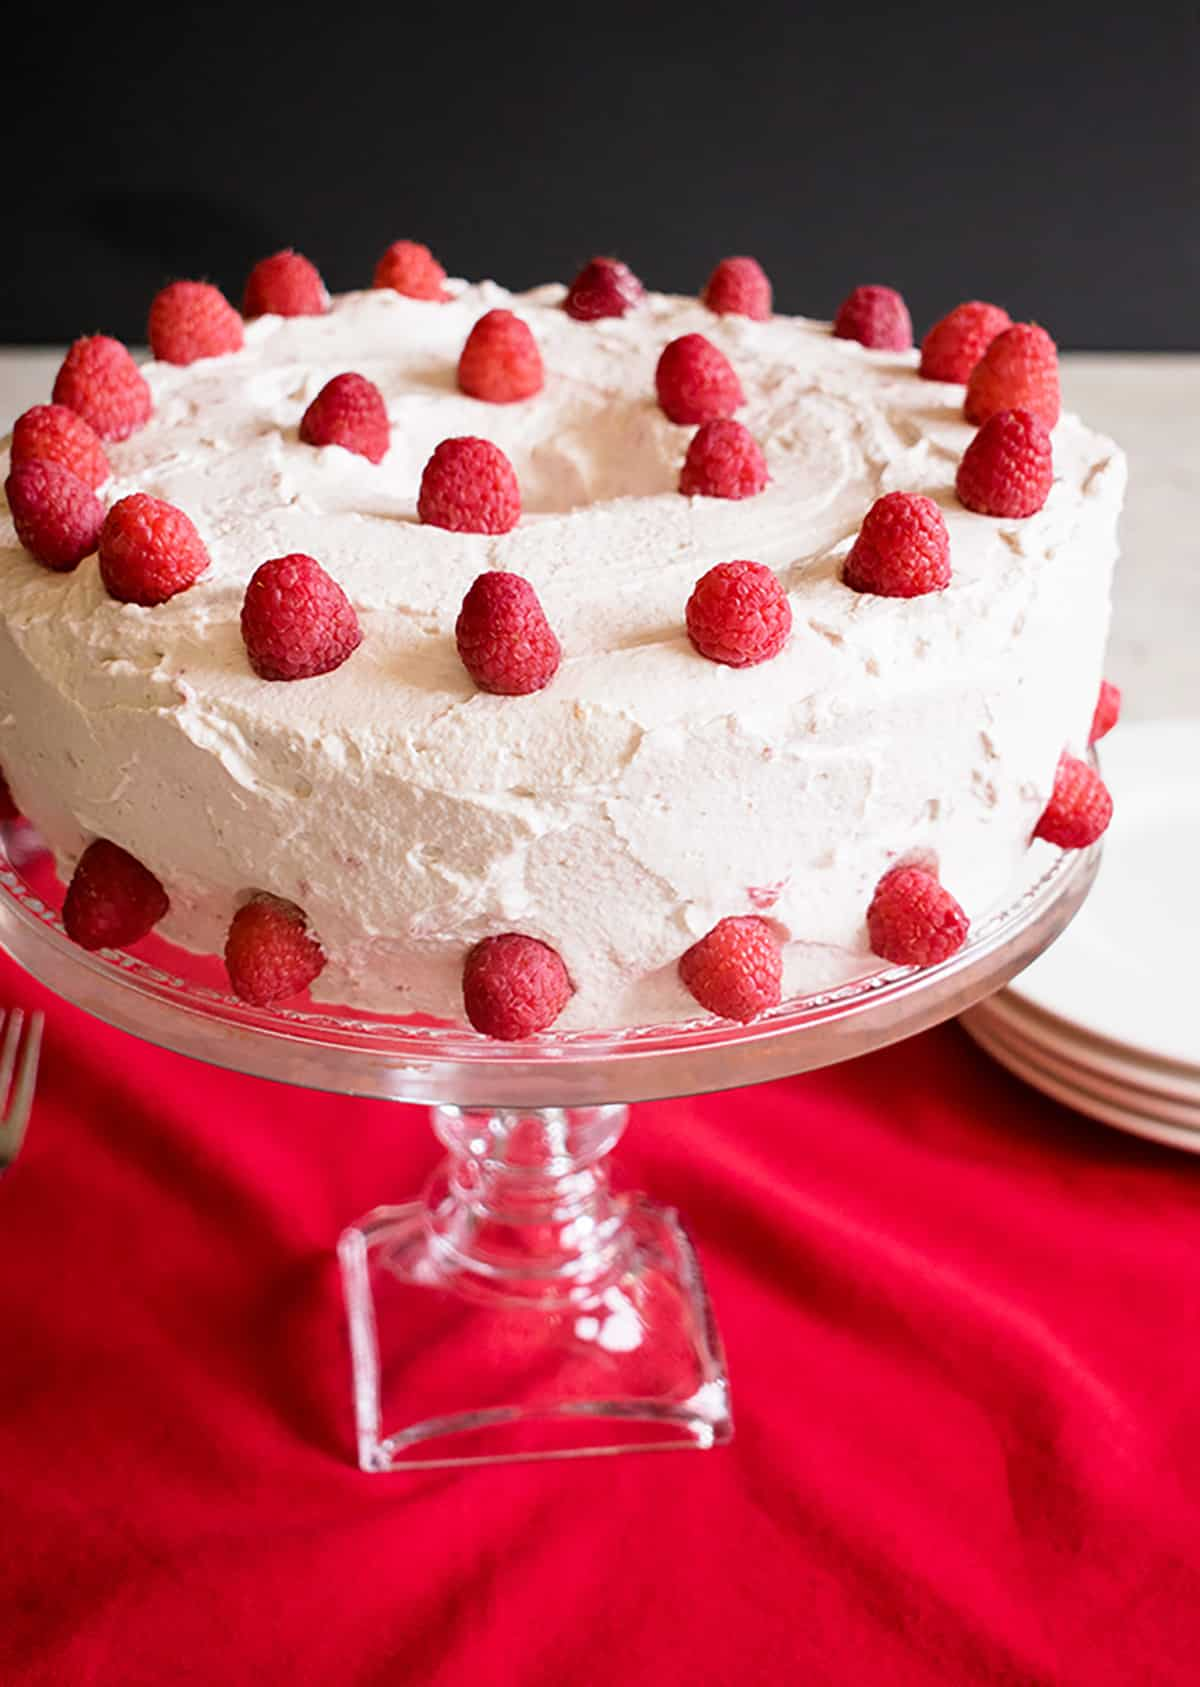 Raspberry-Almond Angel Food Cake - A fabulous dessert featuring angel food from scratch and raspberry-almond whipped cream!